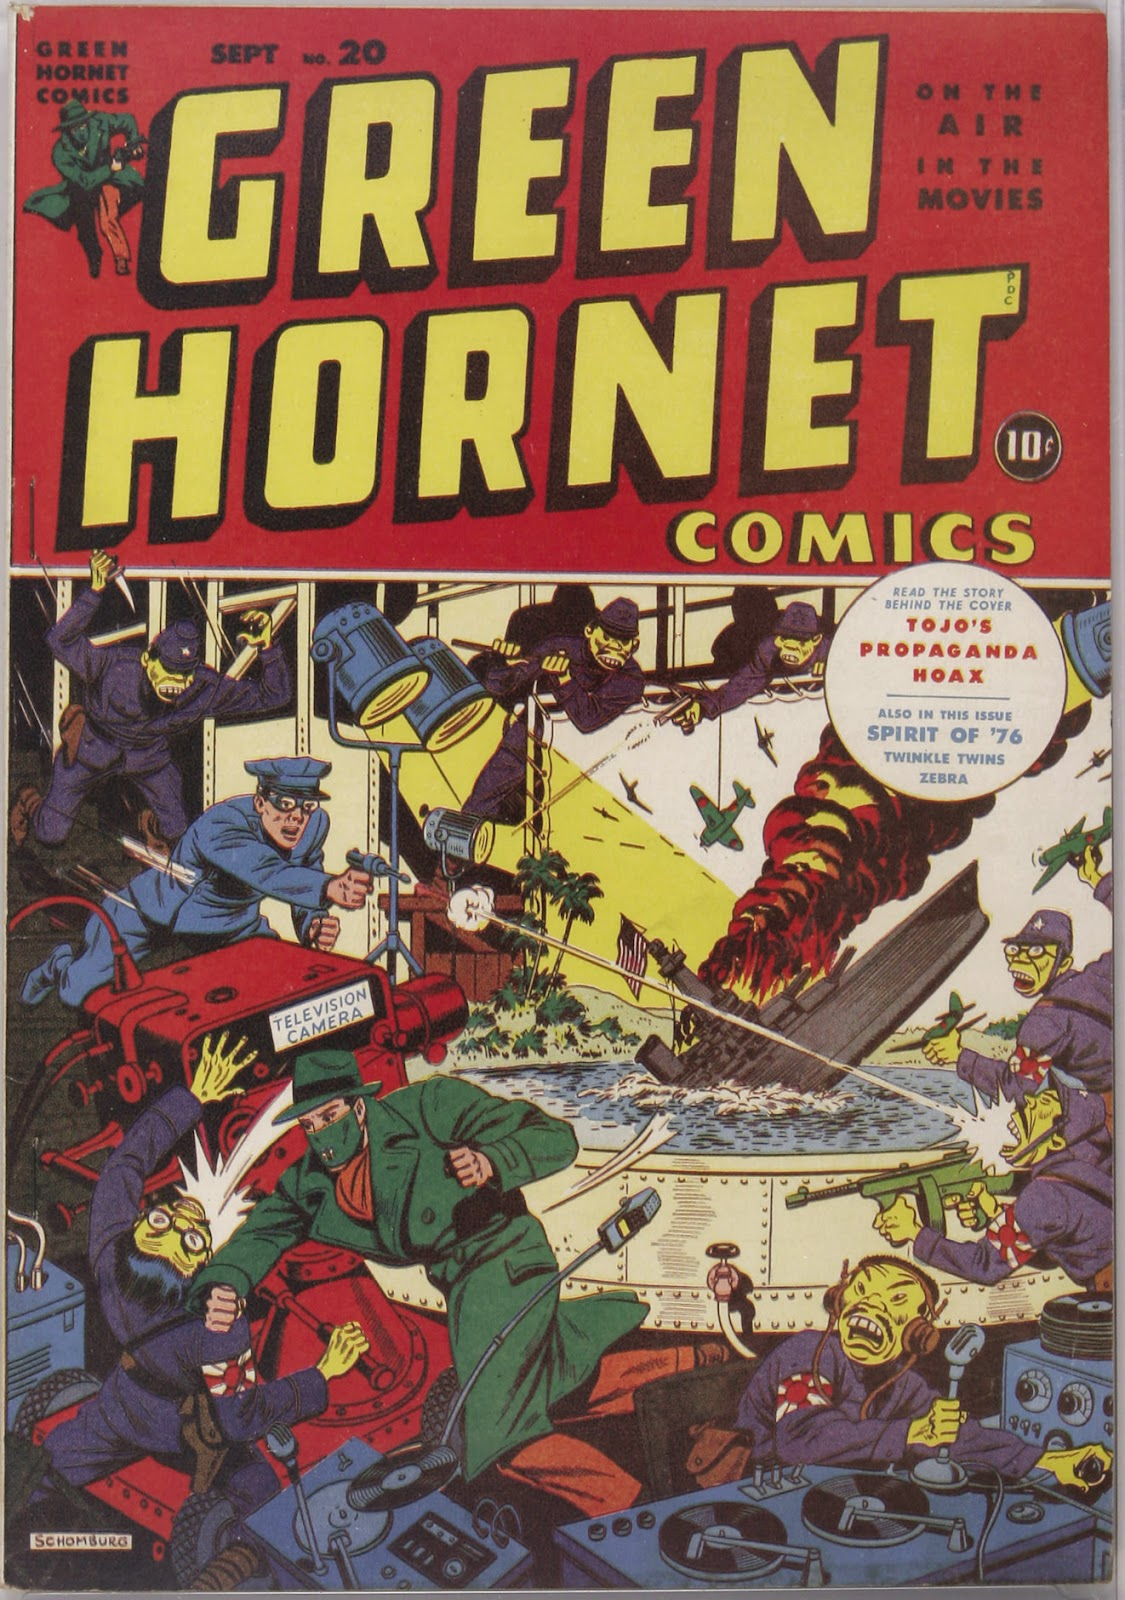 Green Hornet Comics issue 20 - Page 1